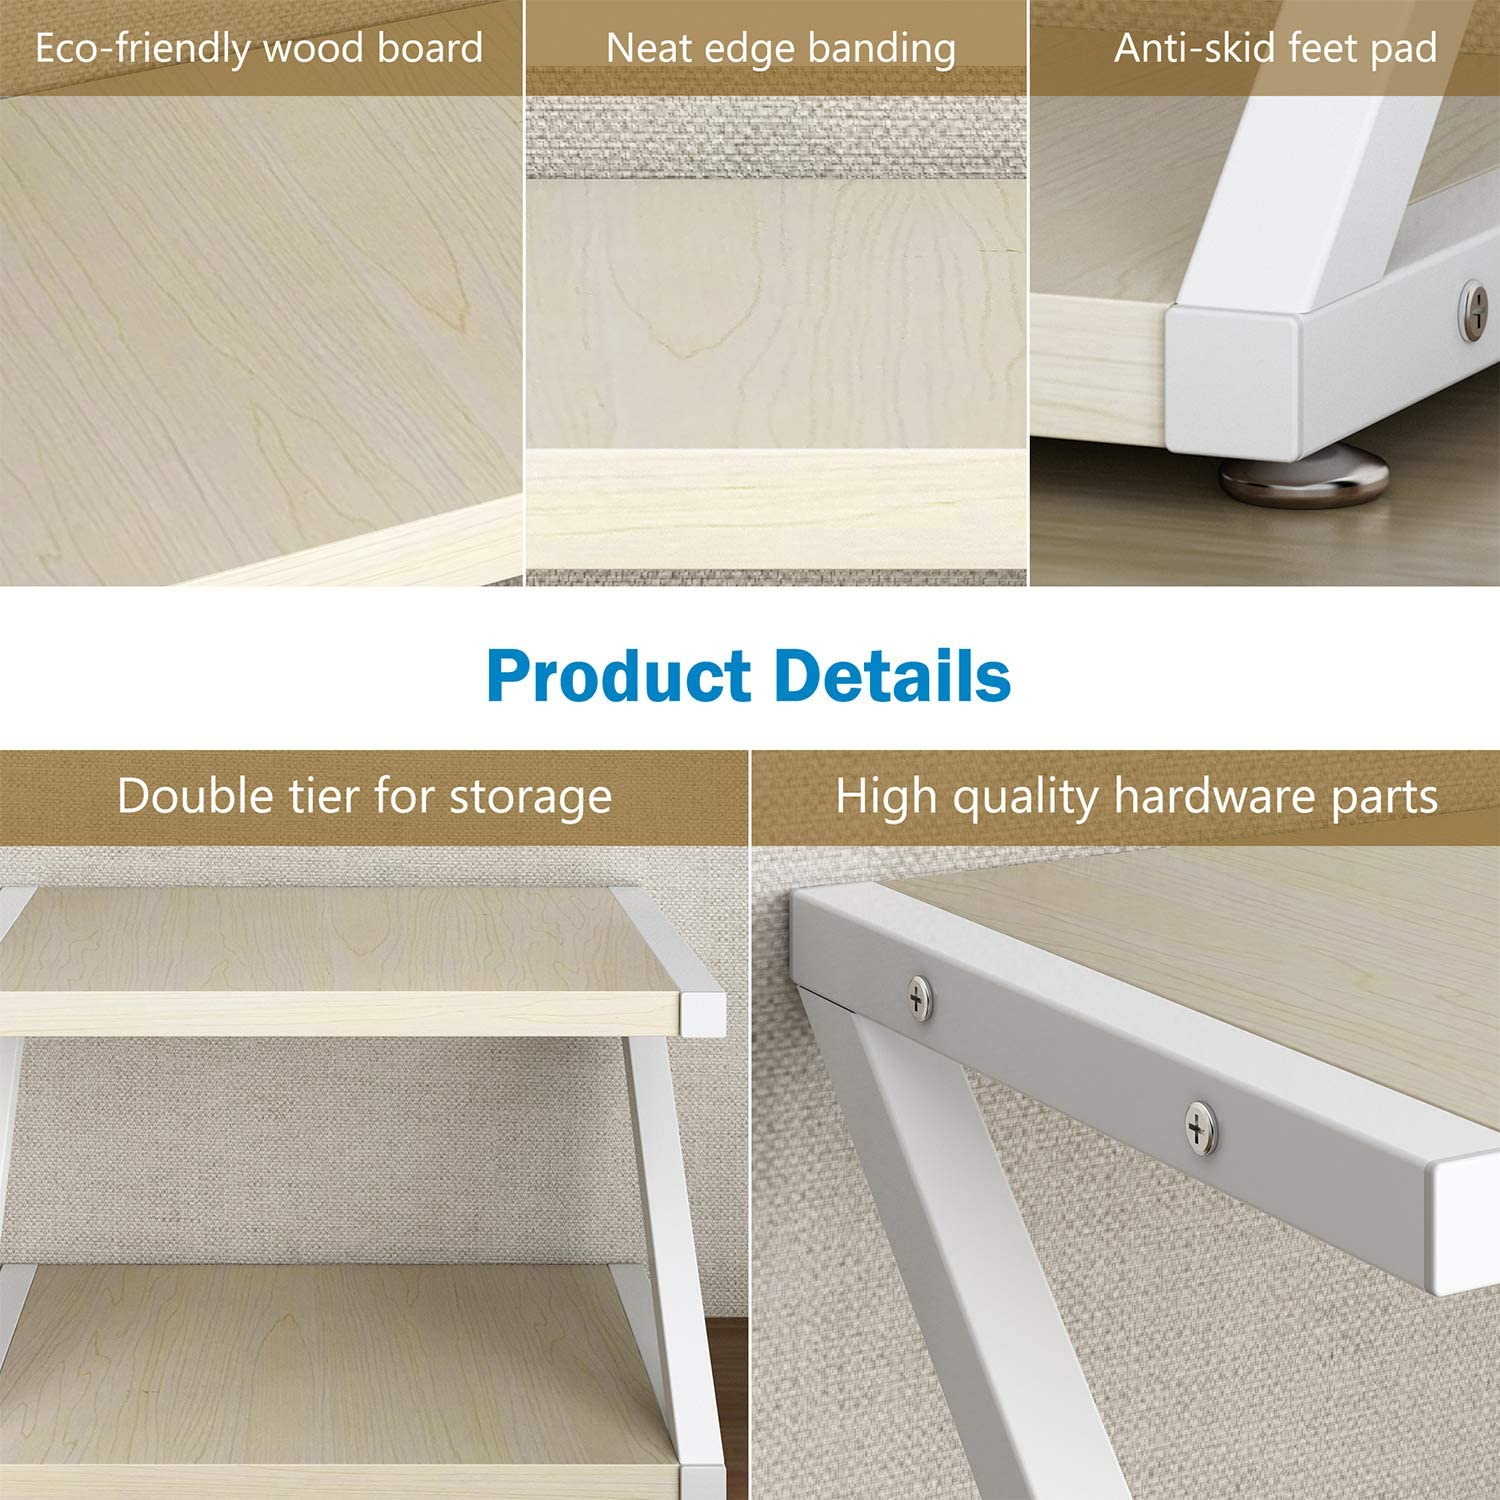 Desktop Stand for Printer - Desktop Shelf with Anti - Skid Pads for Space Organizer as Storage Shelf, Book Shelf, Double Tier Tray with Hardware & Steel for Mini 3D Printer by HUANUO : Office Products